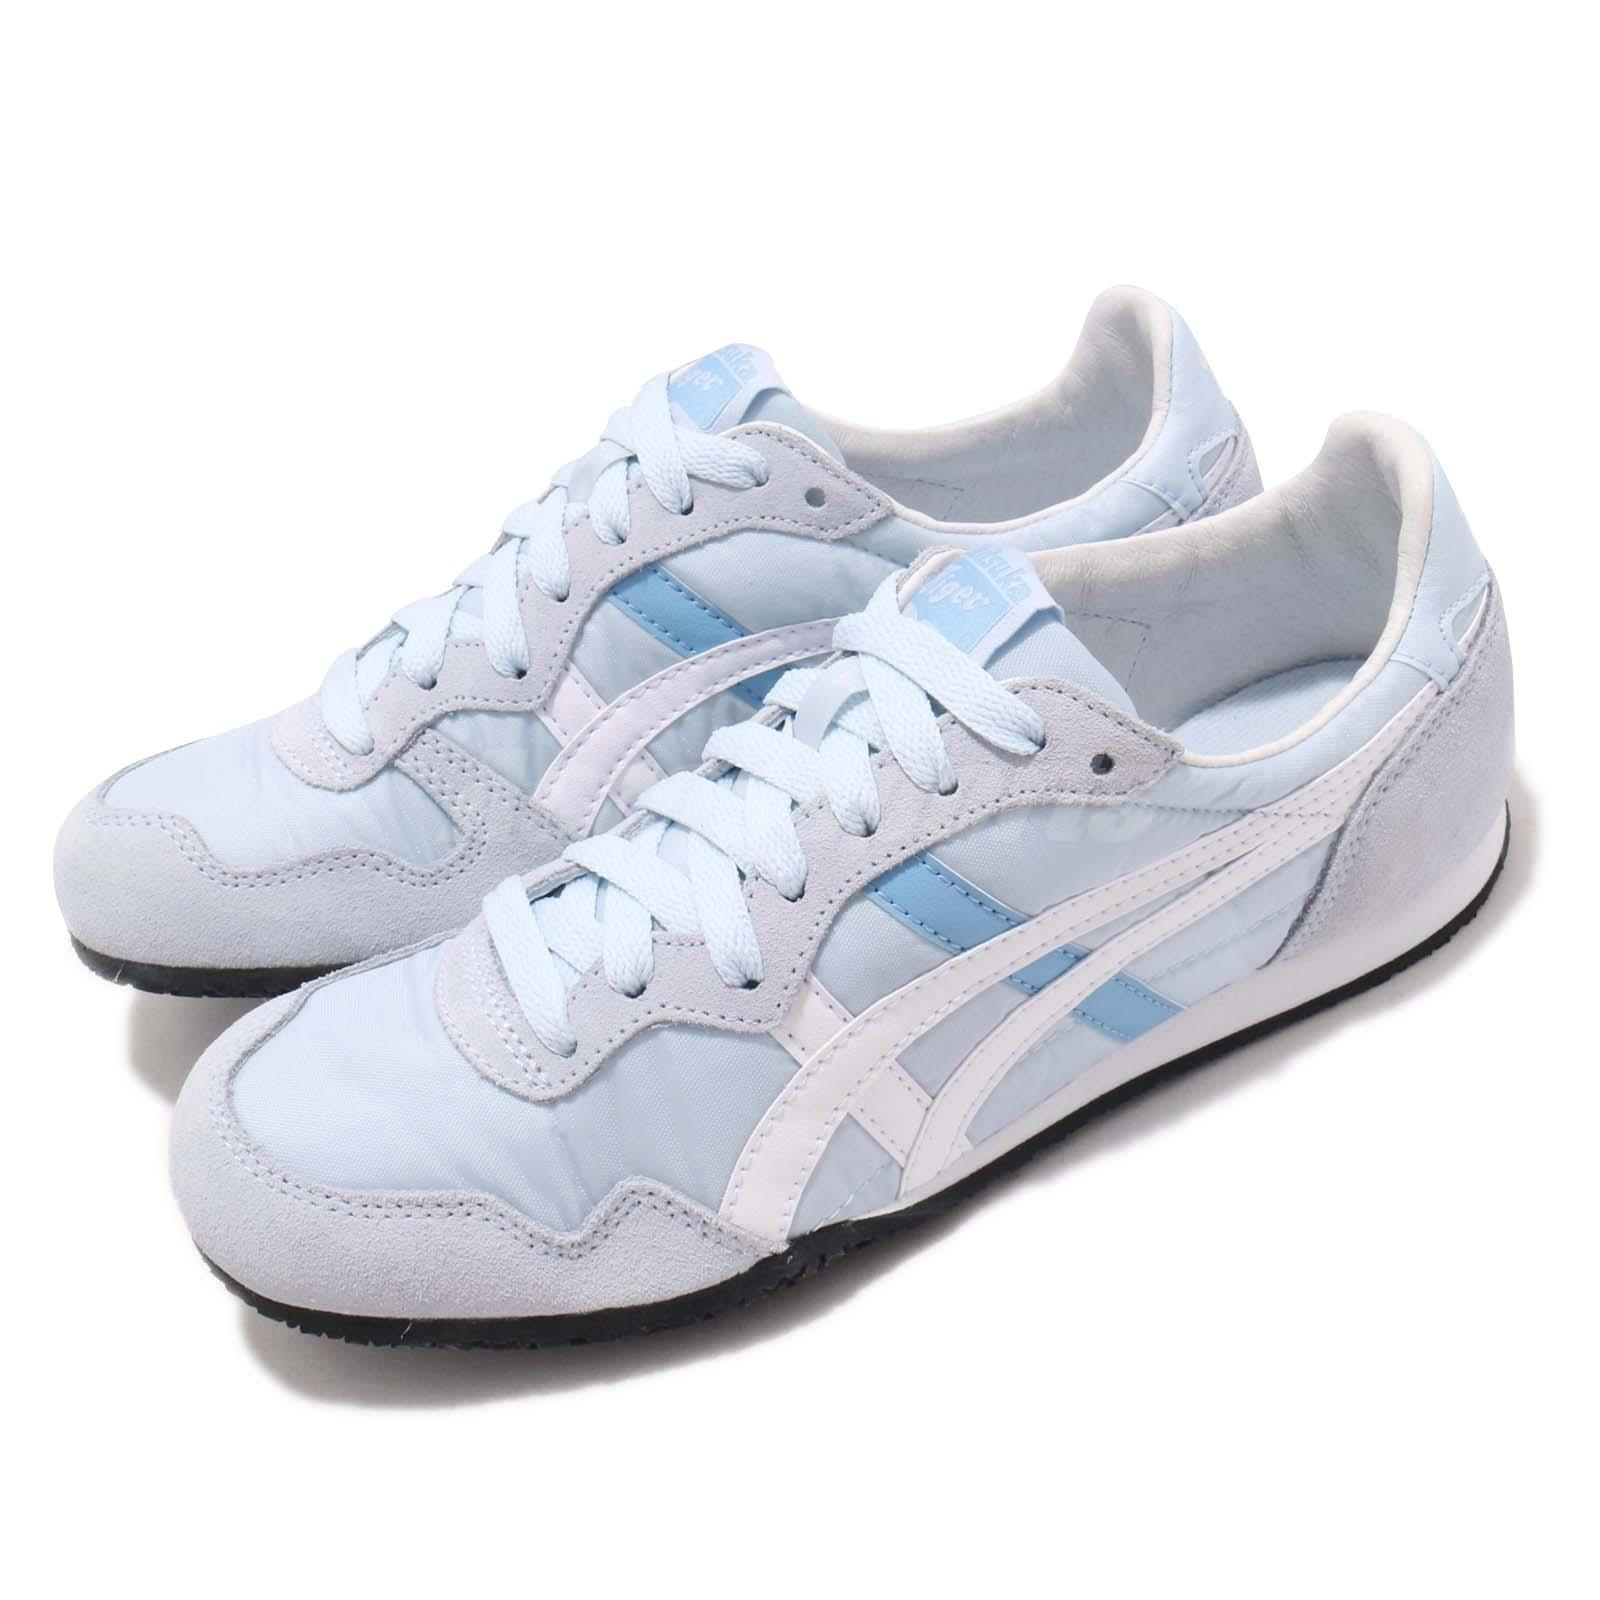 37df2d5770ee3 Details about Asics Onitsuka Tiger Serrano Sky Blue White Women Running  Shoes 1182A077-400